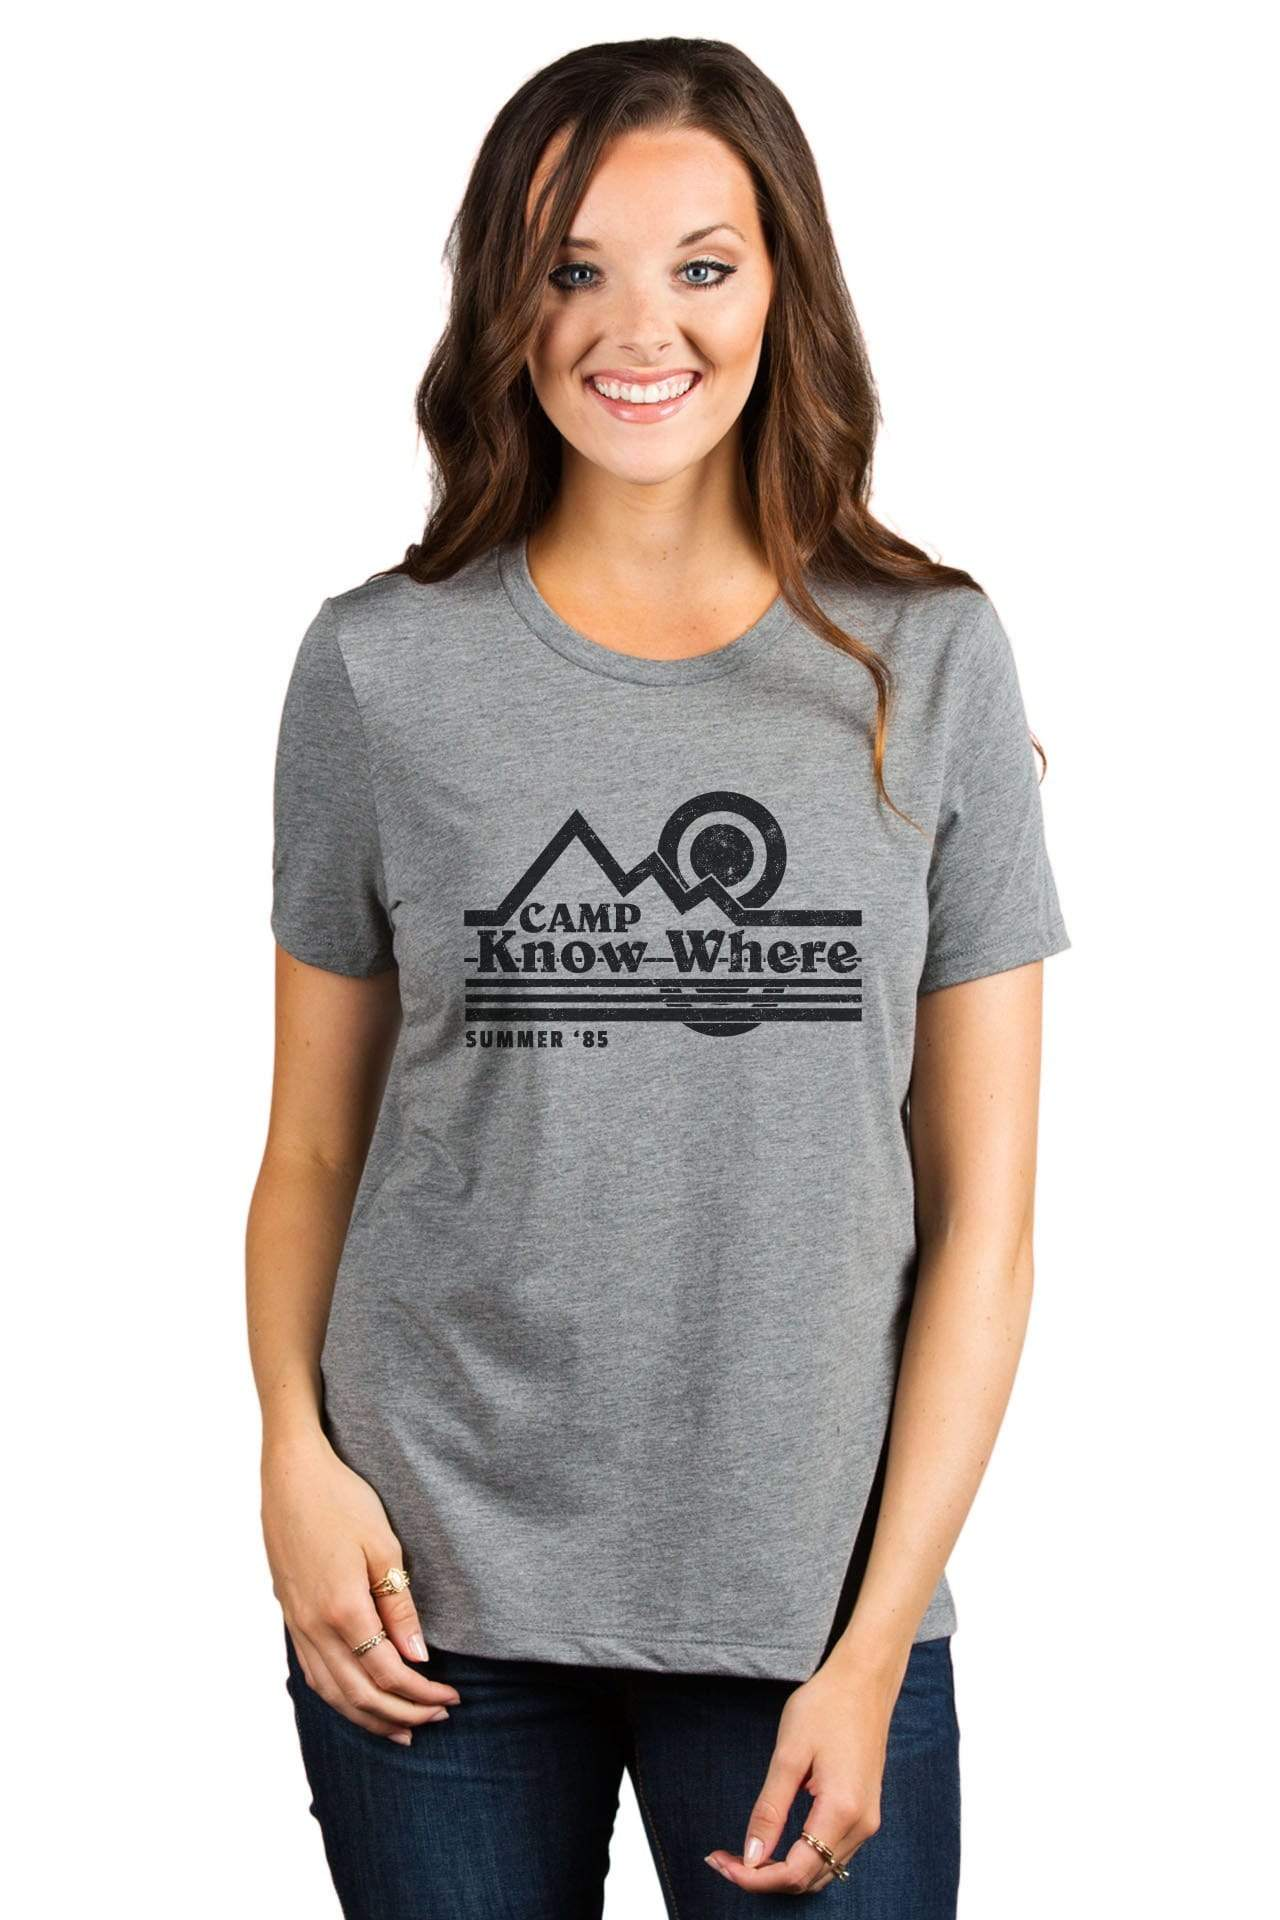 Camp Know Where - Thread Tank | Stories You Can Wear | T-Shirts, Tank Tops and Sweatshirts